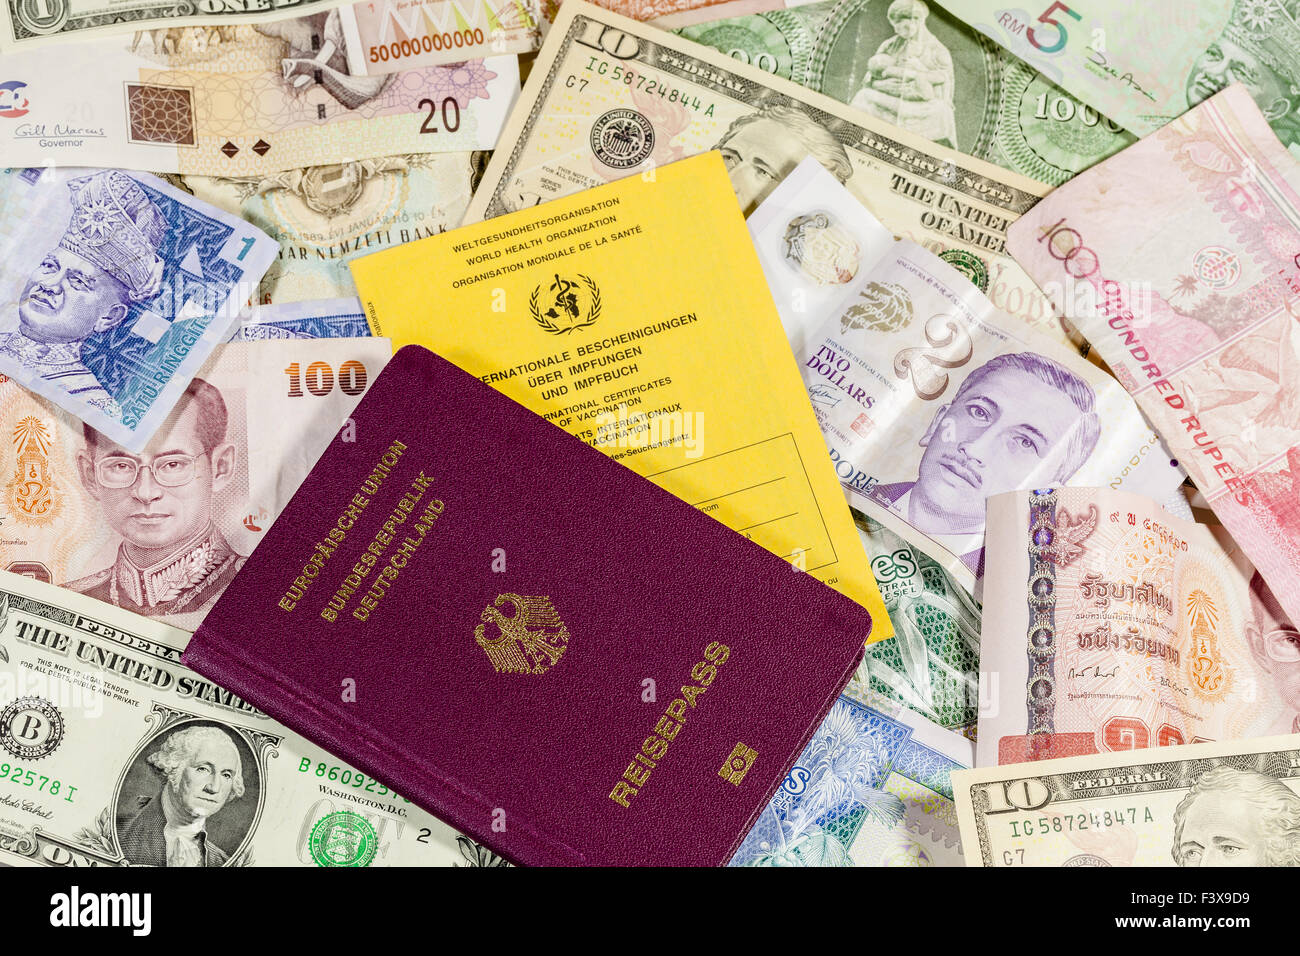 Currency and passport Stock Photo